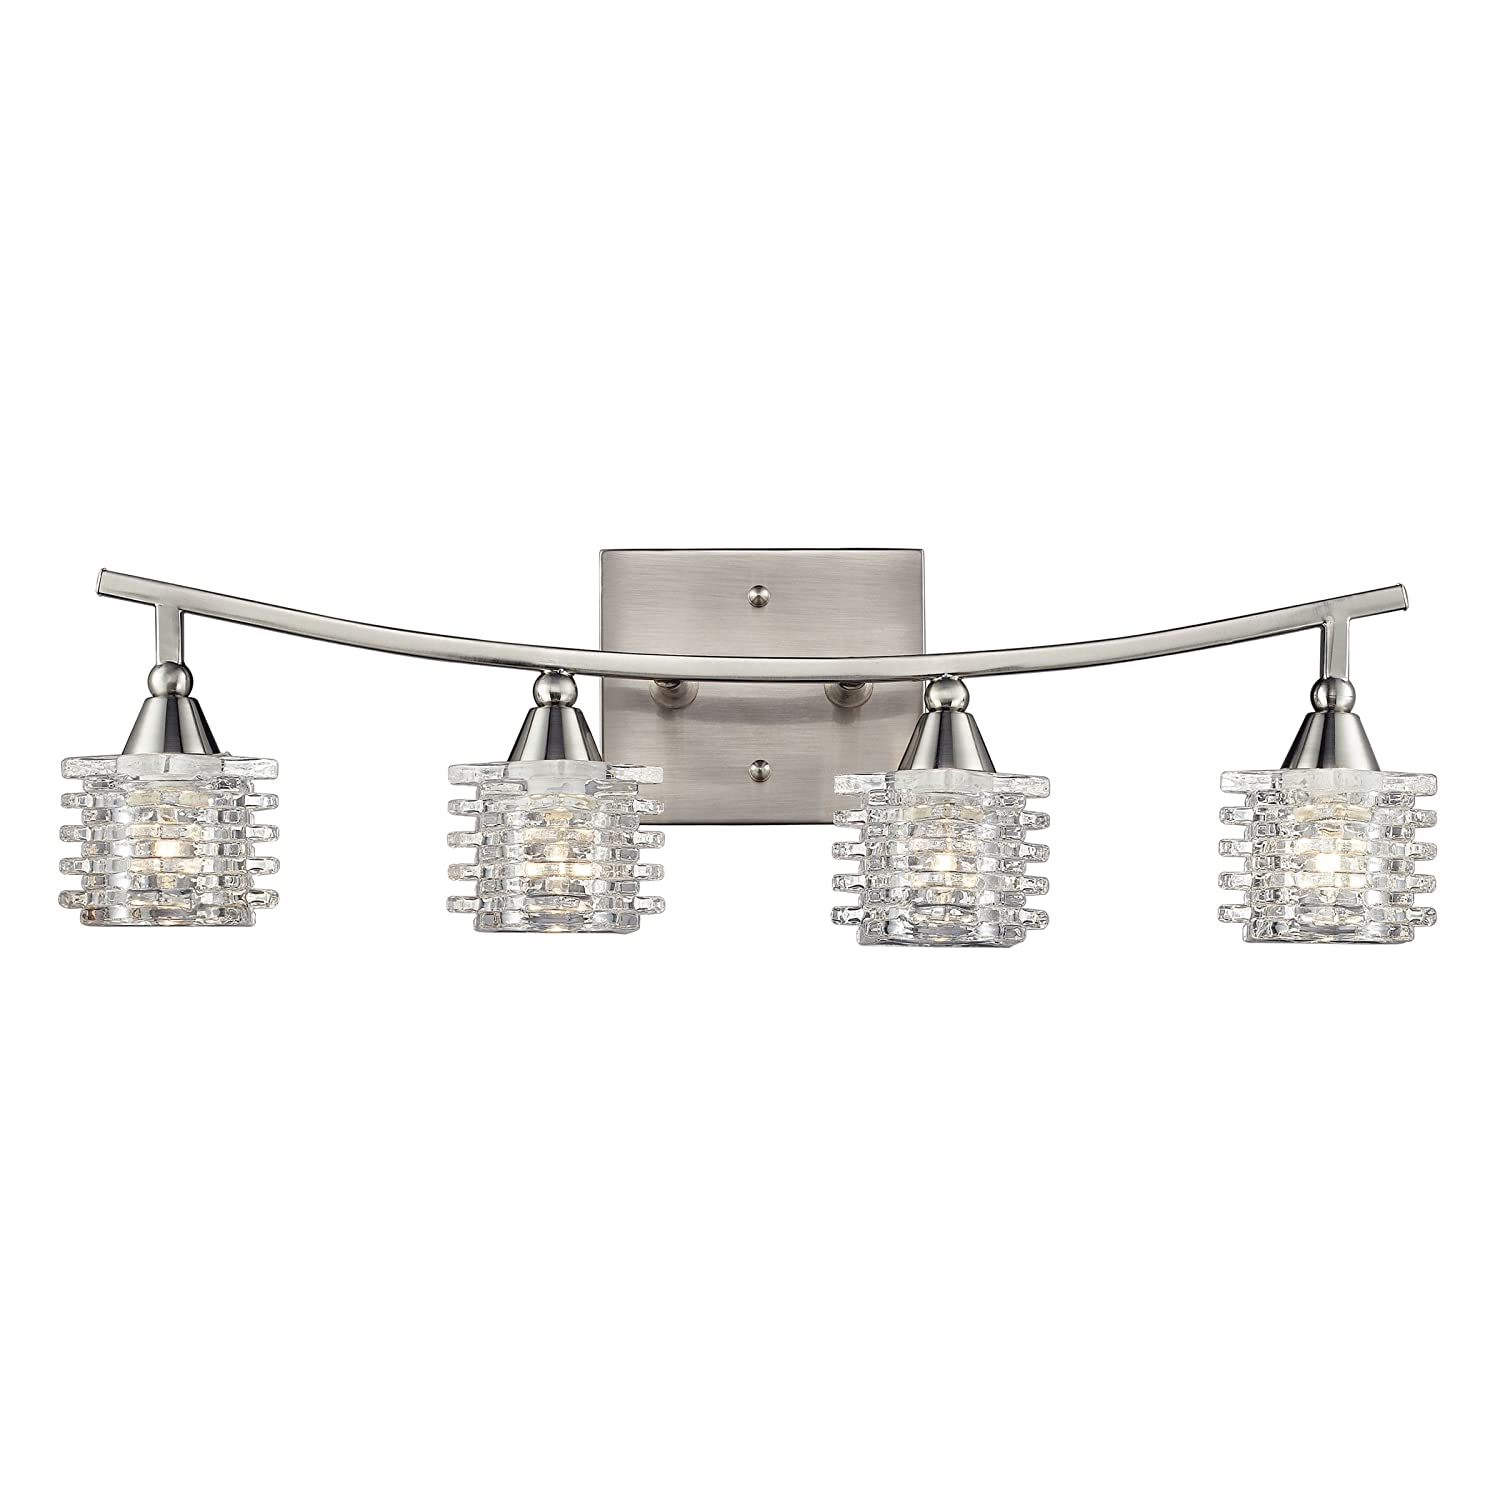 Elk Lighting 17132 4 Matrix Four Light Bath Bar  Satin Nickel   Vanity  Lighting Fixtures   Amazon comElk Lighting 17132 4 Matrix Four Light Bath Bar  Satin Nickel  . Elk Lighting Catalog. Home Design Ideas